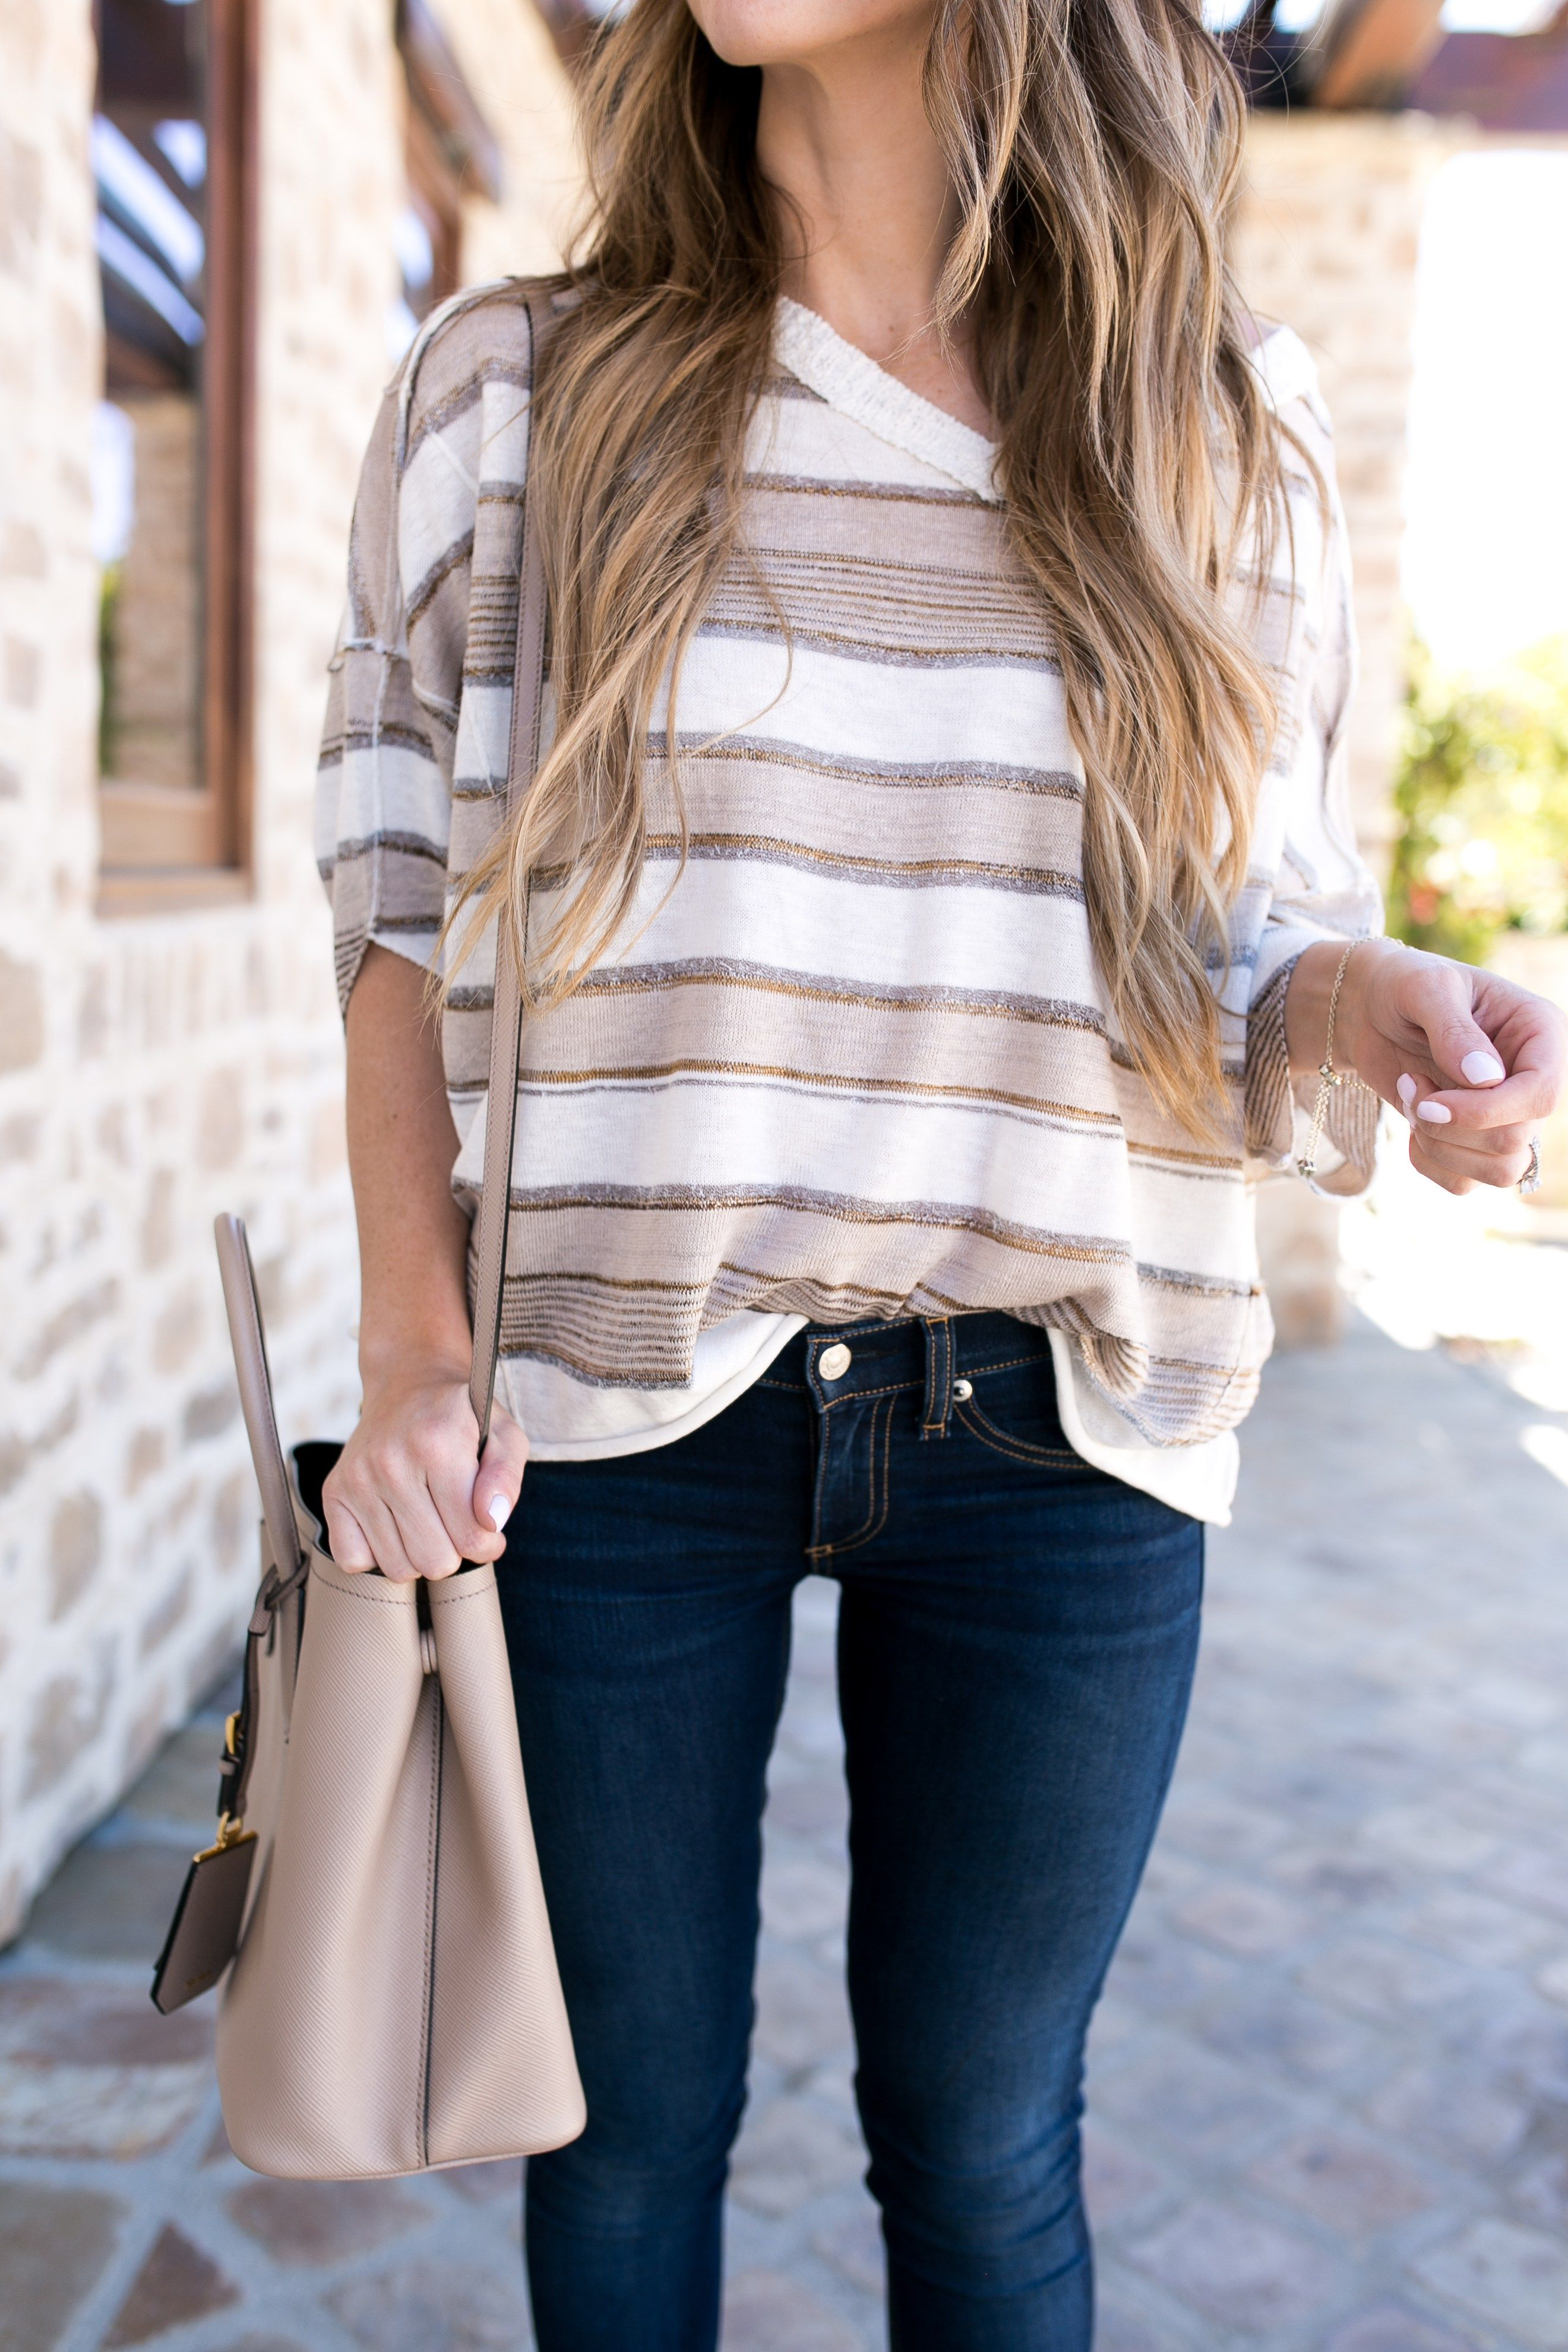 e8f87540aa98 One of my favorite things to wear through the beginning Summer months are  light sweaters. They are super cute paired with jeans